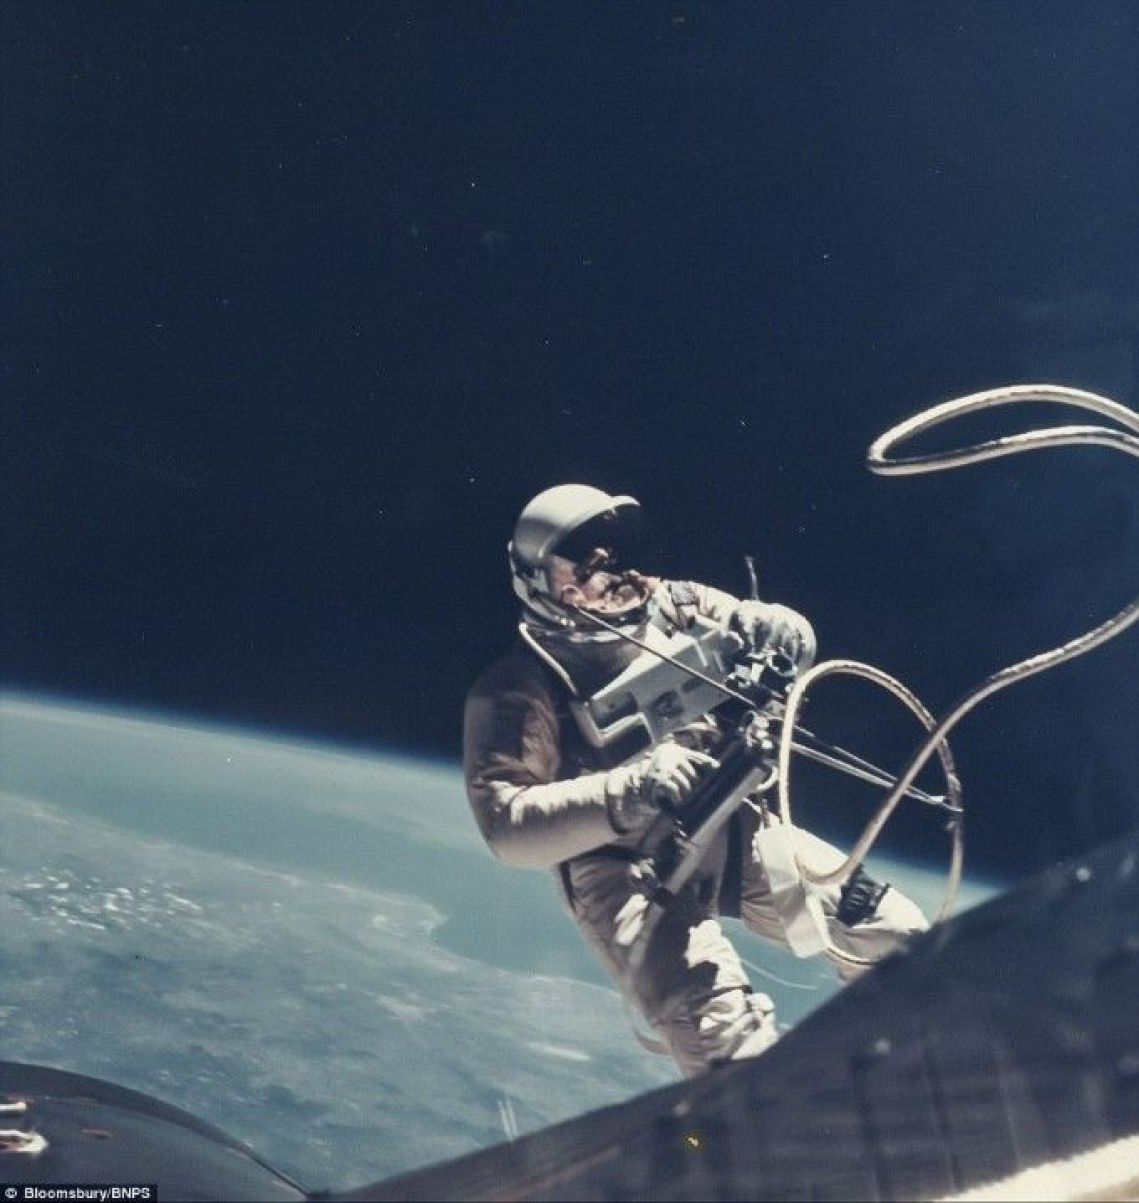 Vintage NASA Photos that went under the hammer at Bloomsbury Auctions, London